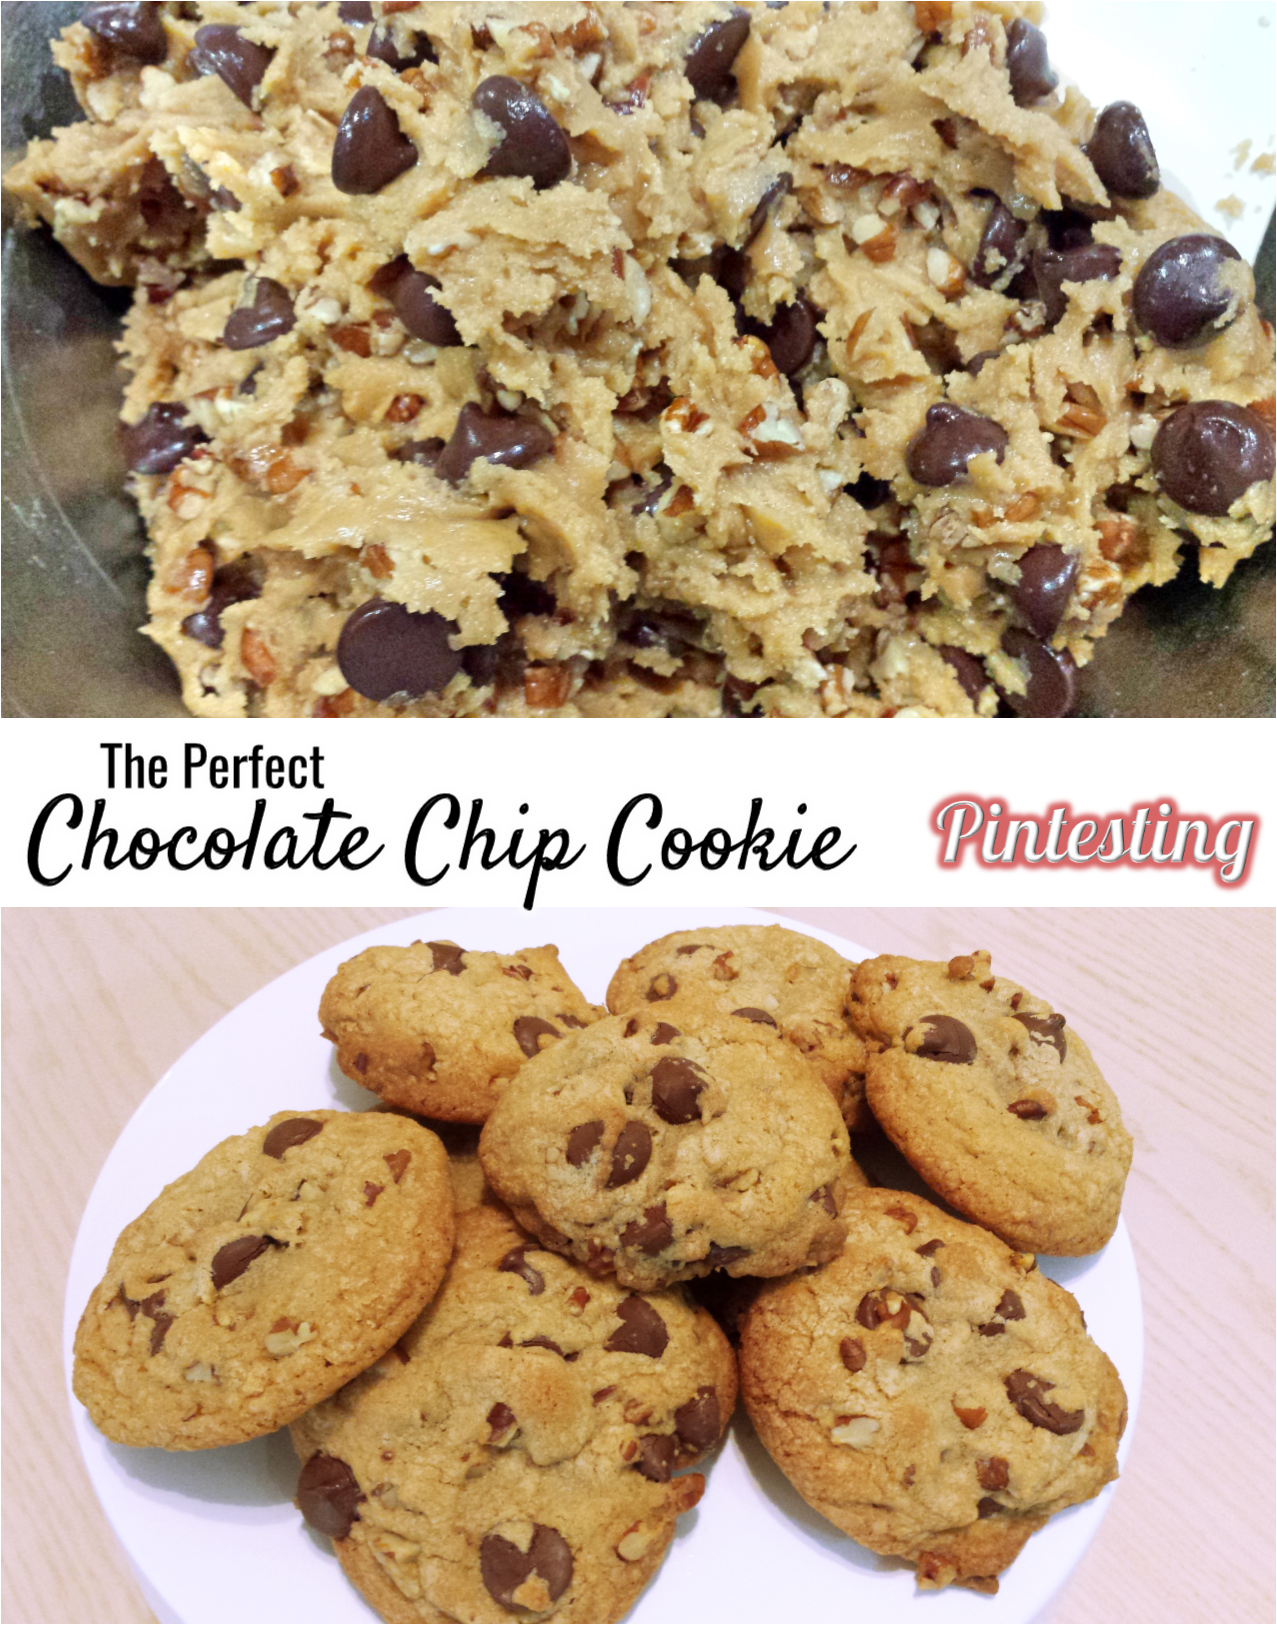 Pintesting Perfect Chocolate Chip Cookie